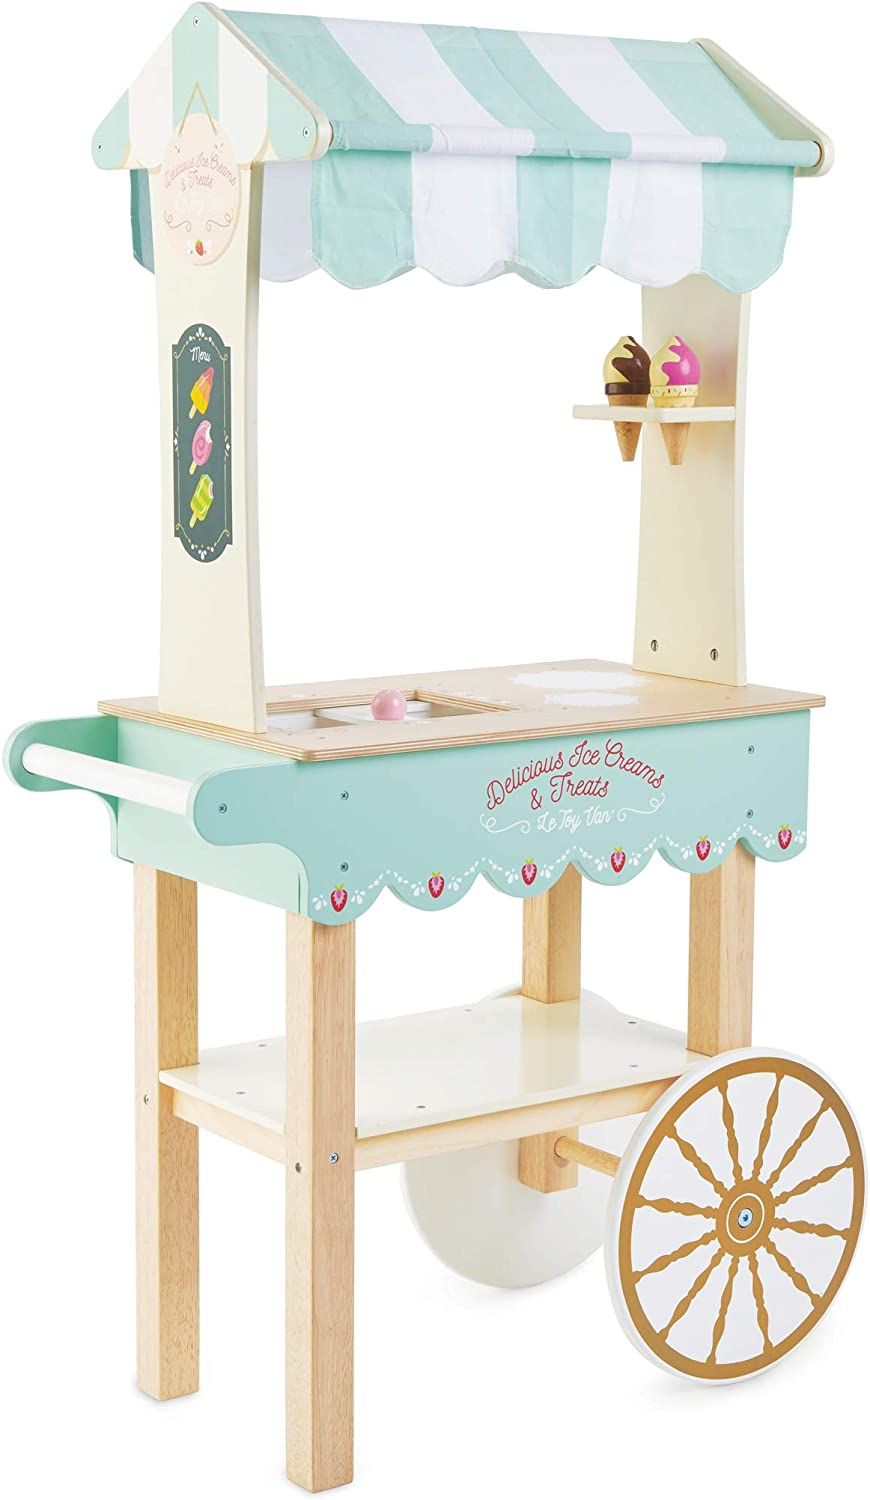 Le Toy Van Honeybake Collection Ice Cream & Treats Trolley Premium Wooden Toys for Kids Ages 3 Years & Up